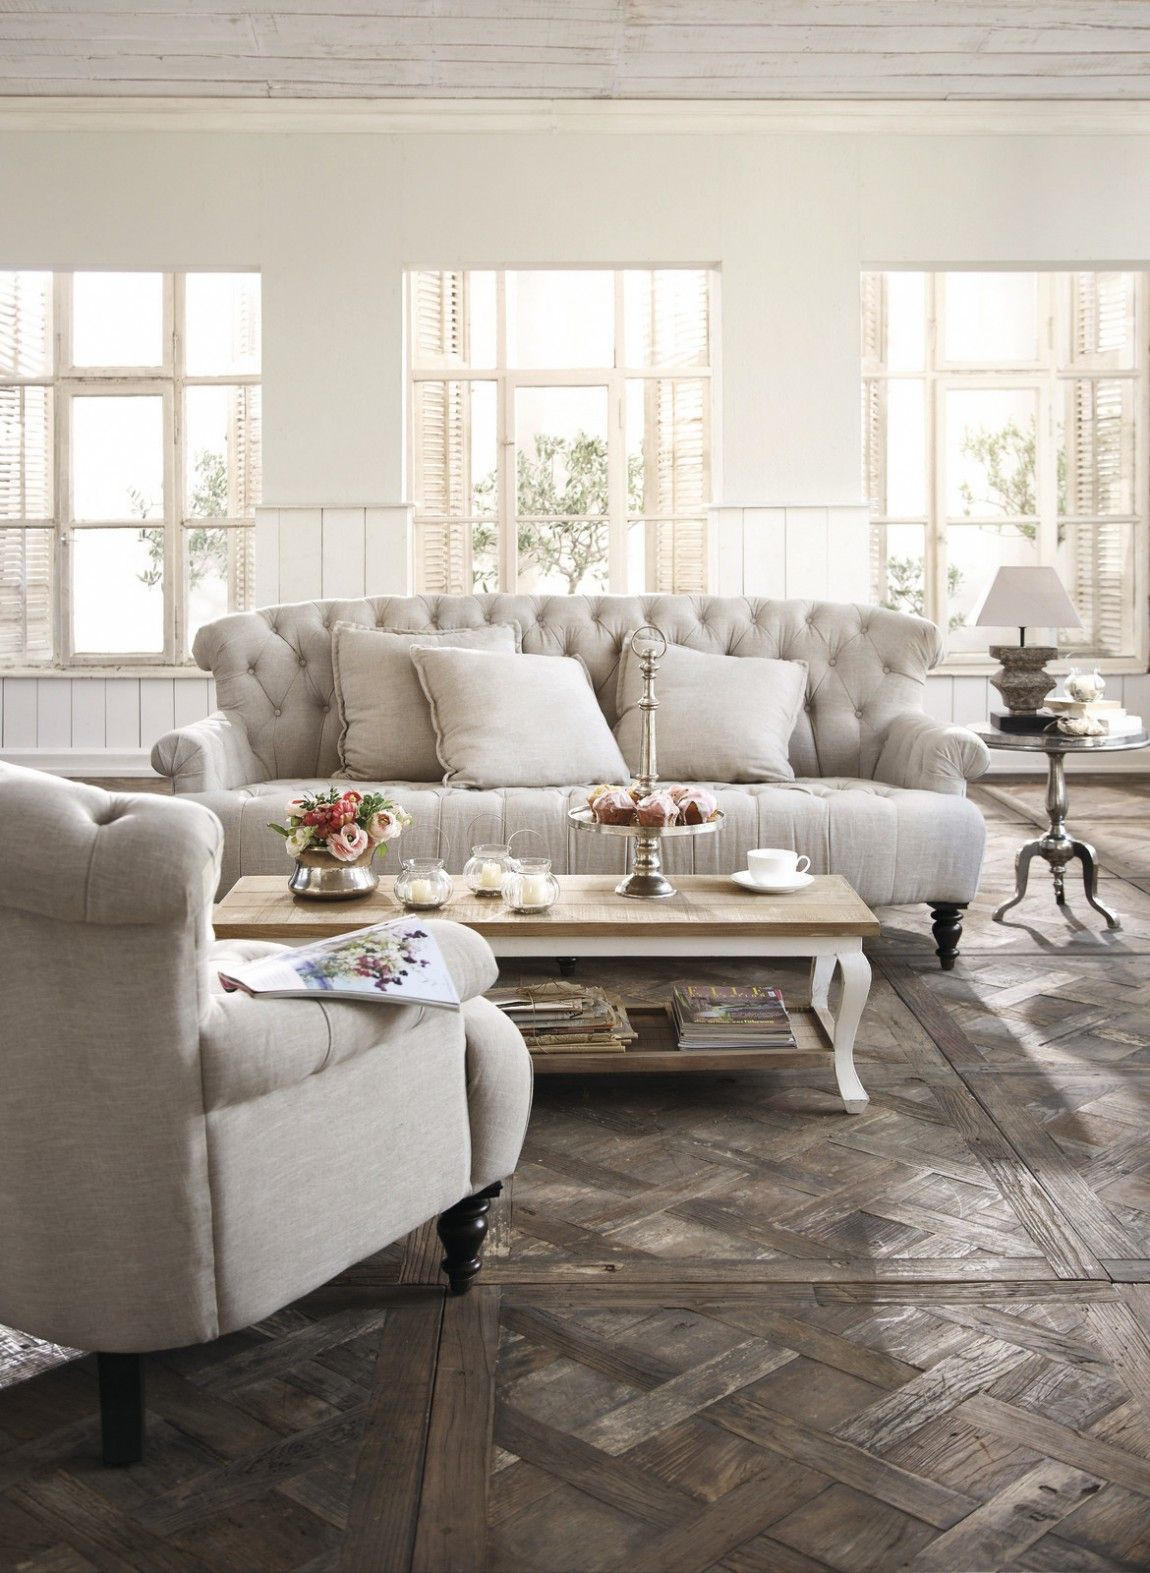 Landhausstil Wohnzimmer Pins Of The Week Tufting Interiors And Gardens Sofa